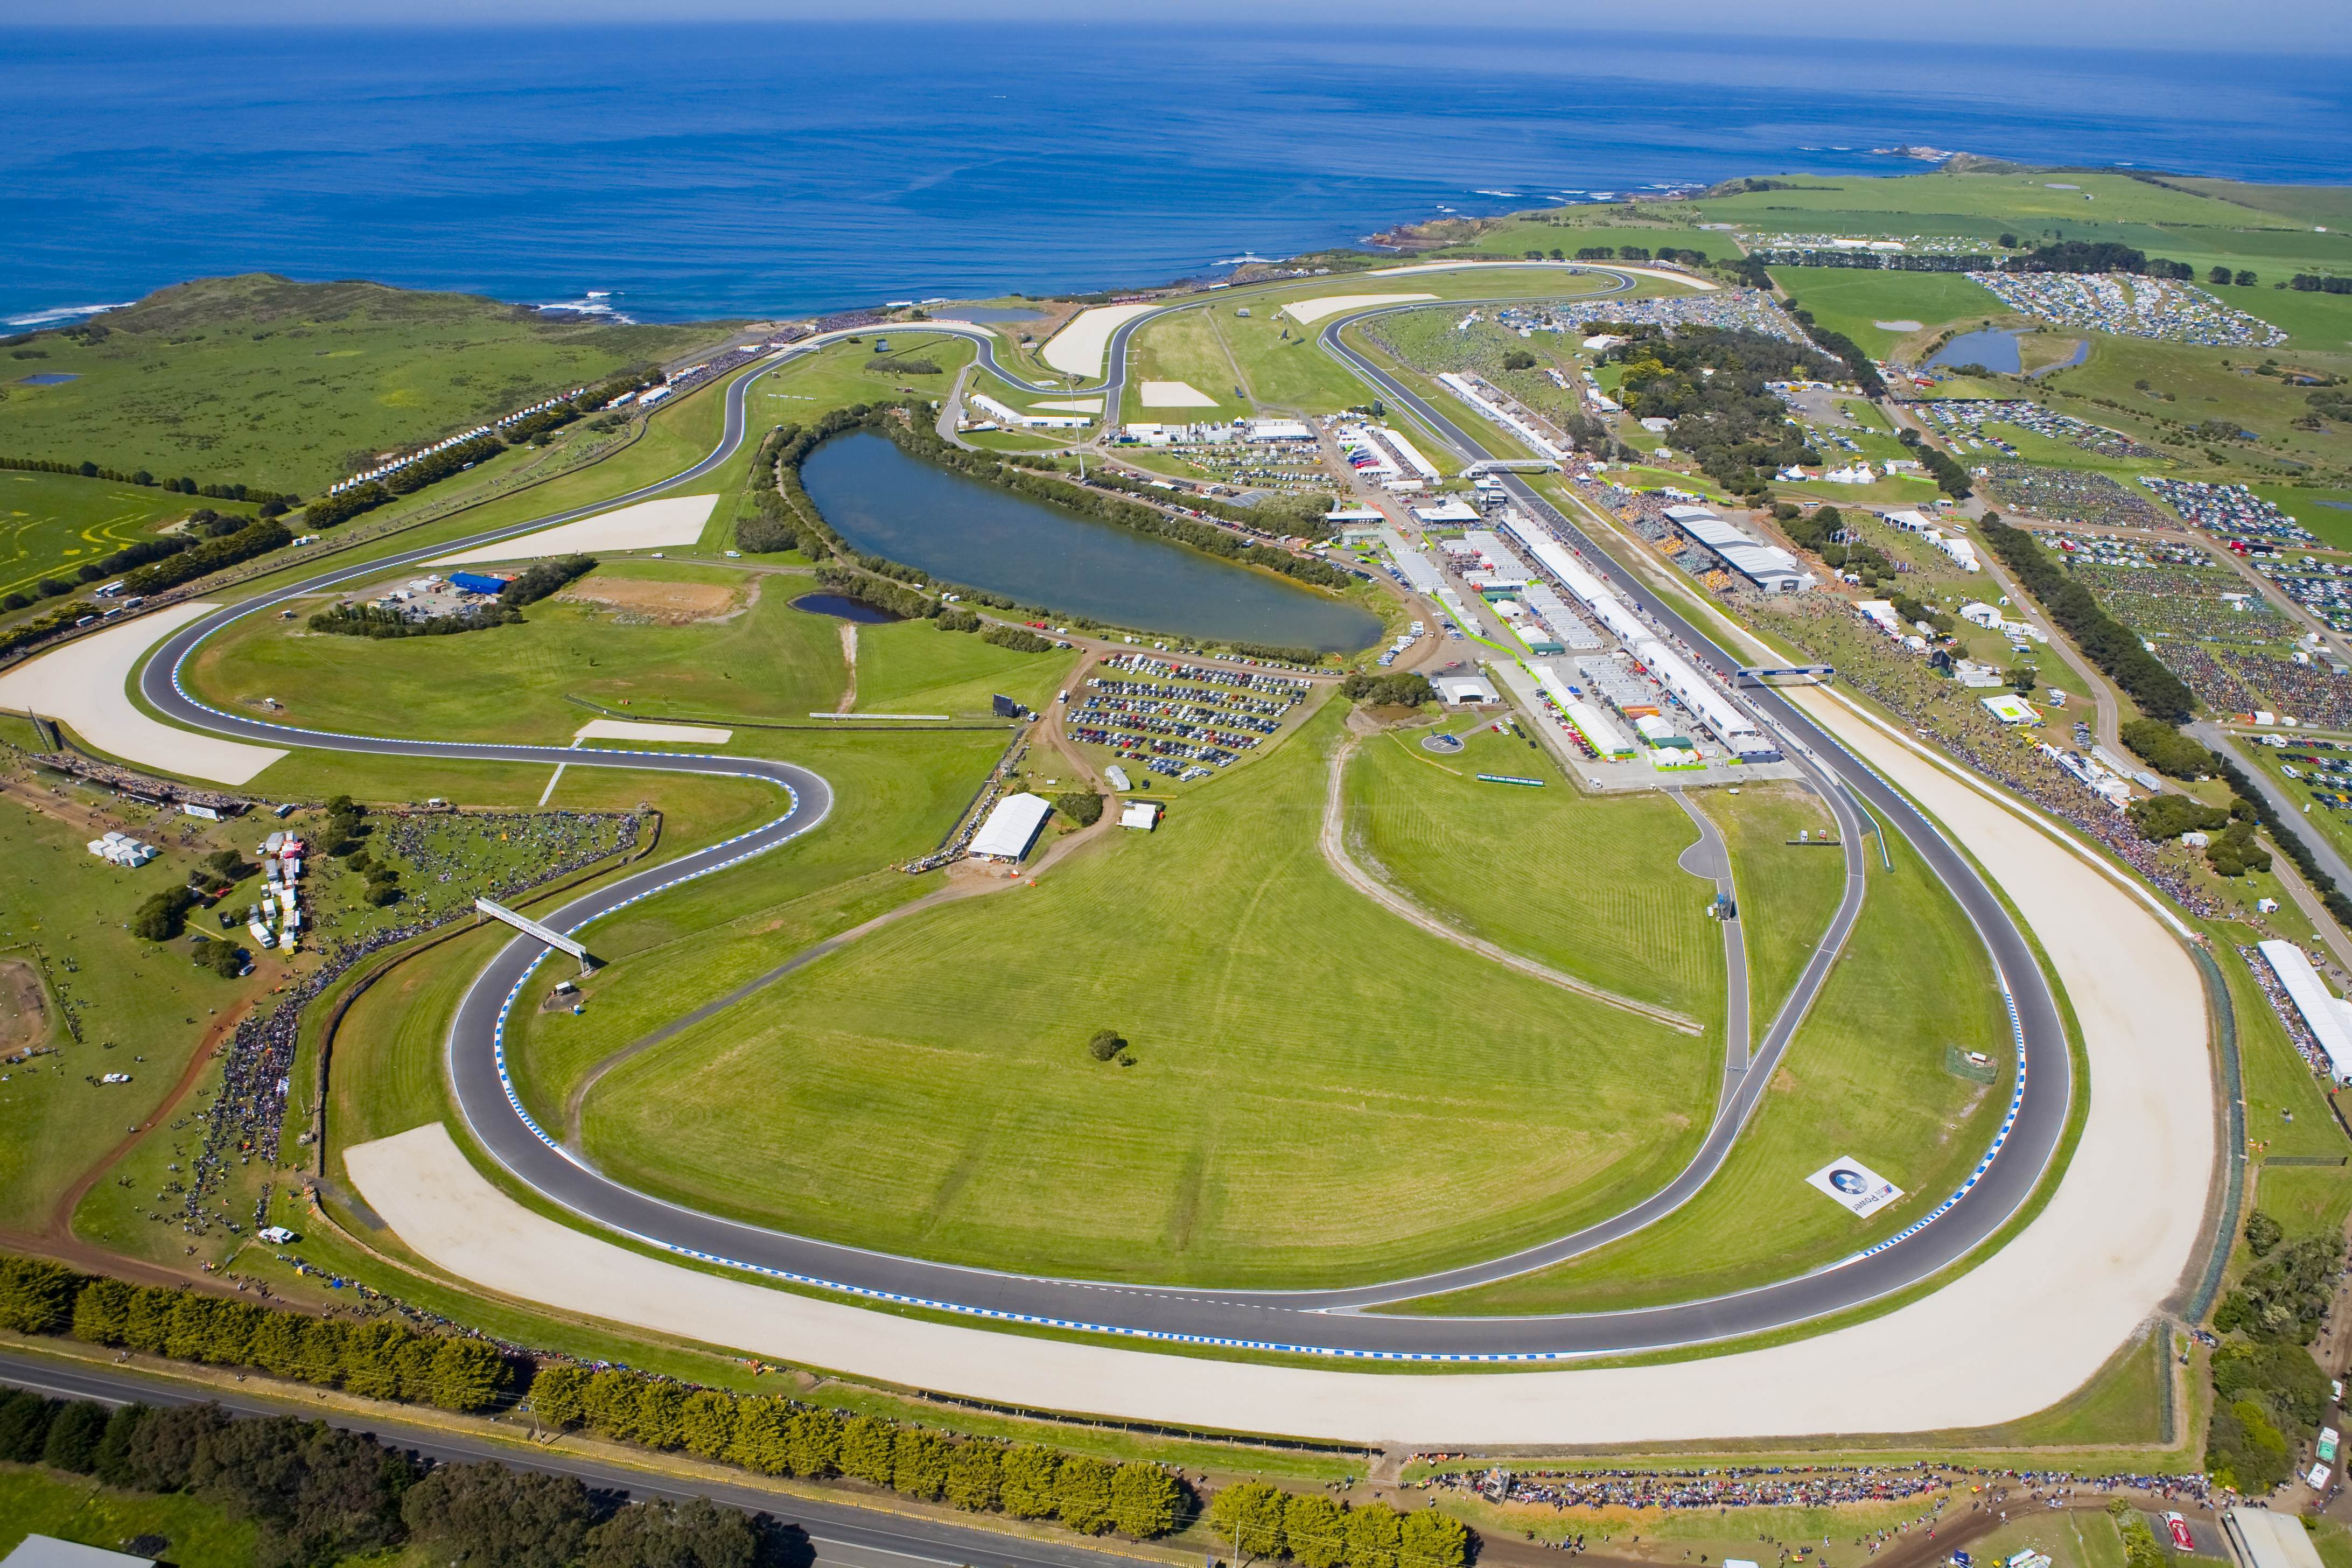 Dorna Sports ensures racing at Phillip Island for next ten years - Bike Review